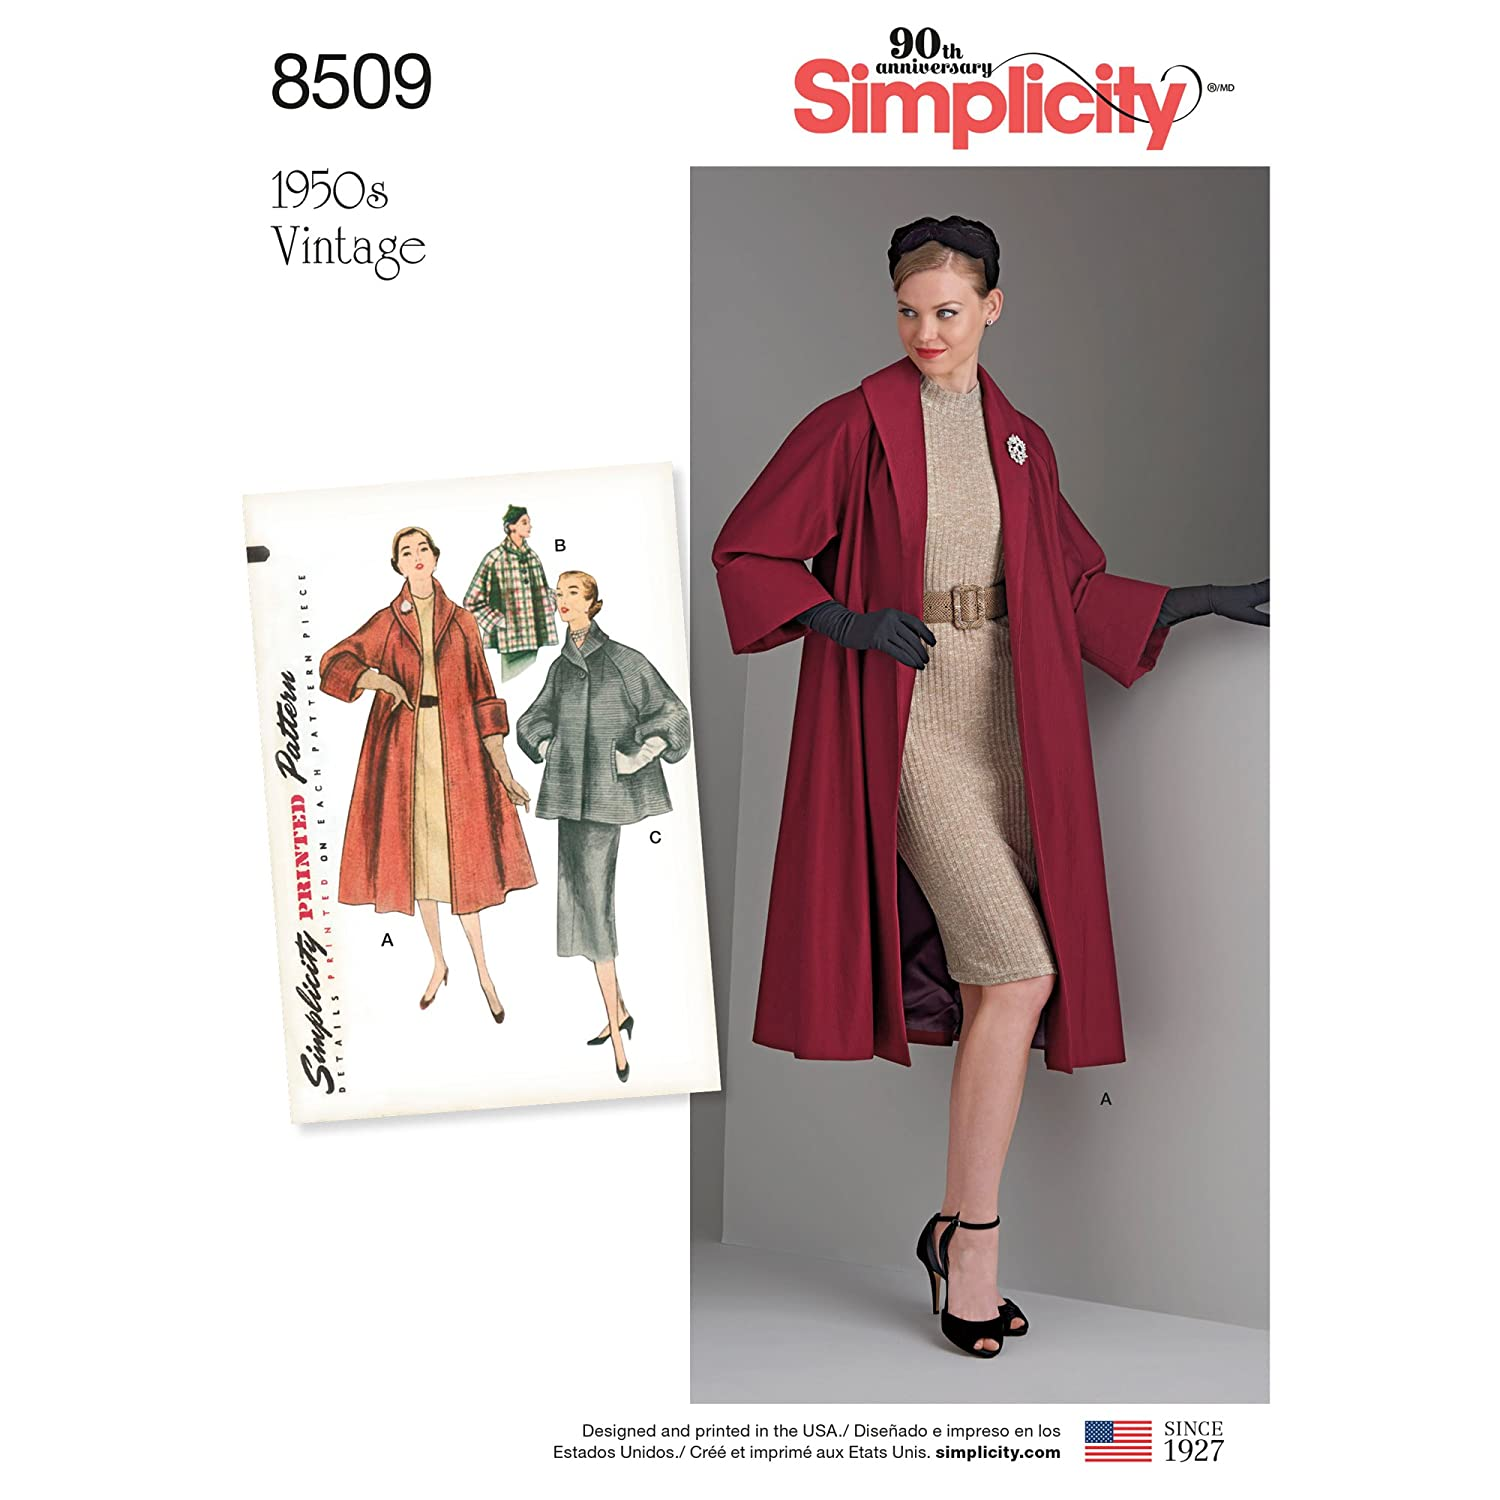 1950s Fabrics & Colors in Fashion Simplicity Creative Patterns US8509R5 Sewing Tops/Vest/Jkts/Coats R5 (14-16-18-20-22) $10.01 AT vintagedancer.com